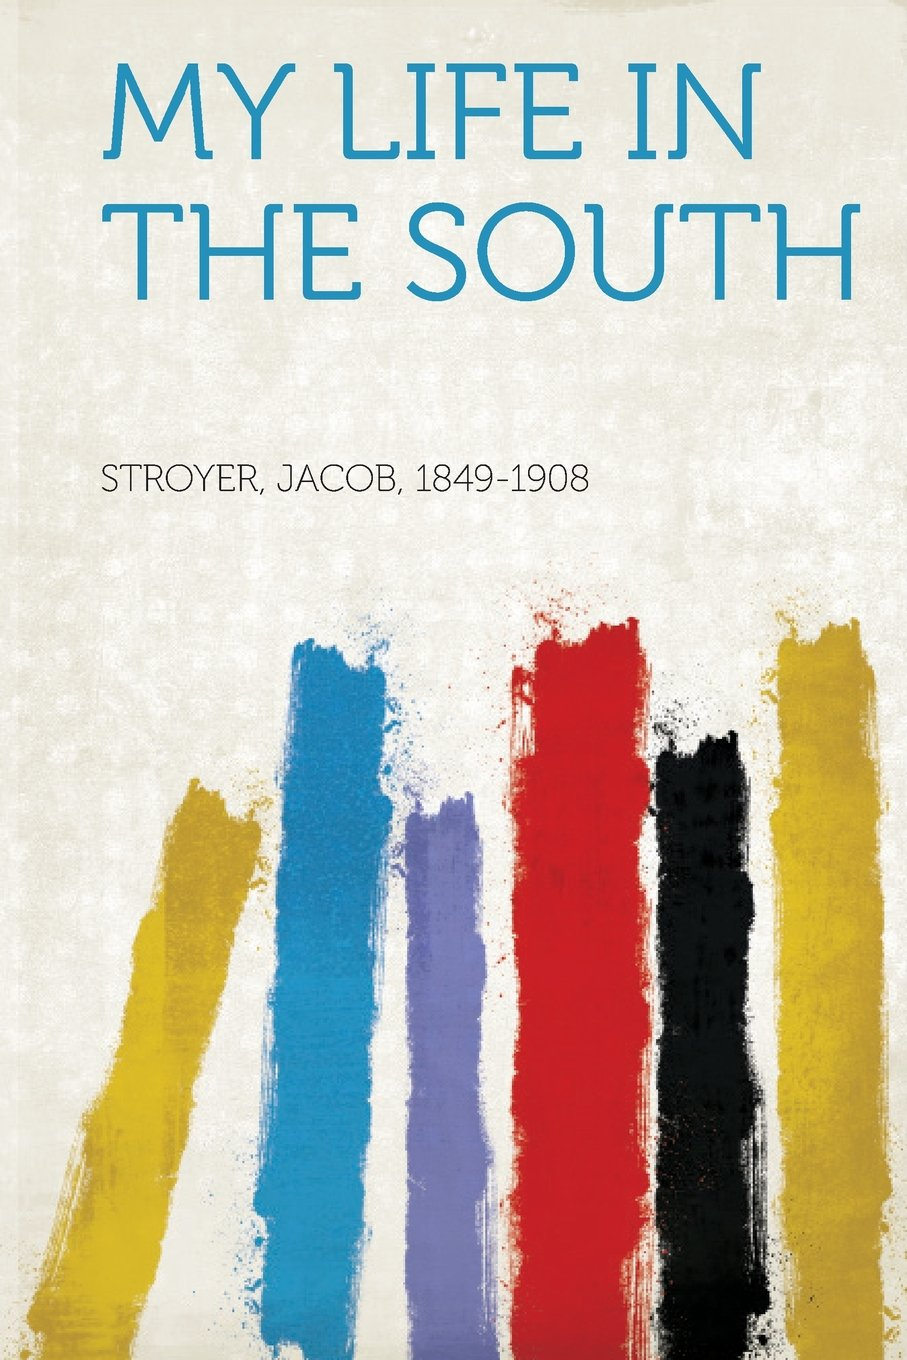 My Life in the South: Stroyer Jacob 1849-1908: 9781314084726: Amazon.com: Books